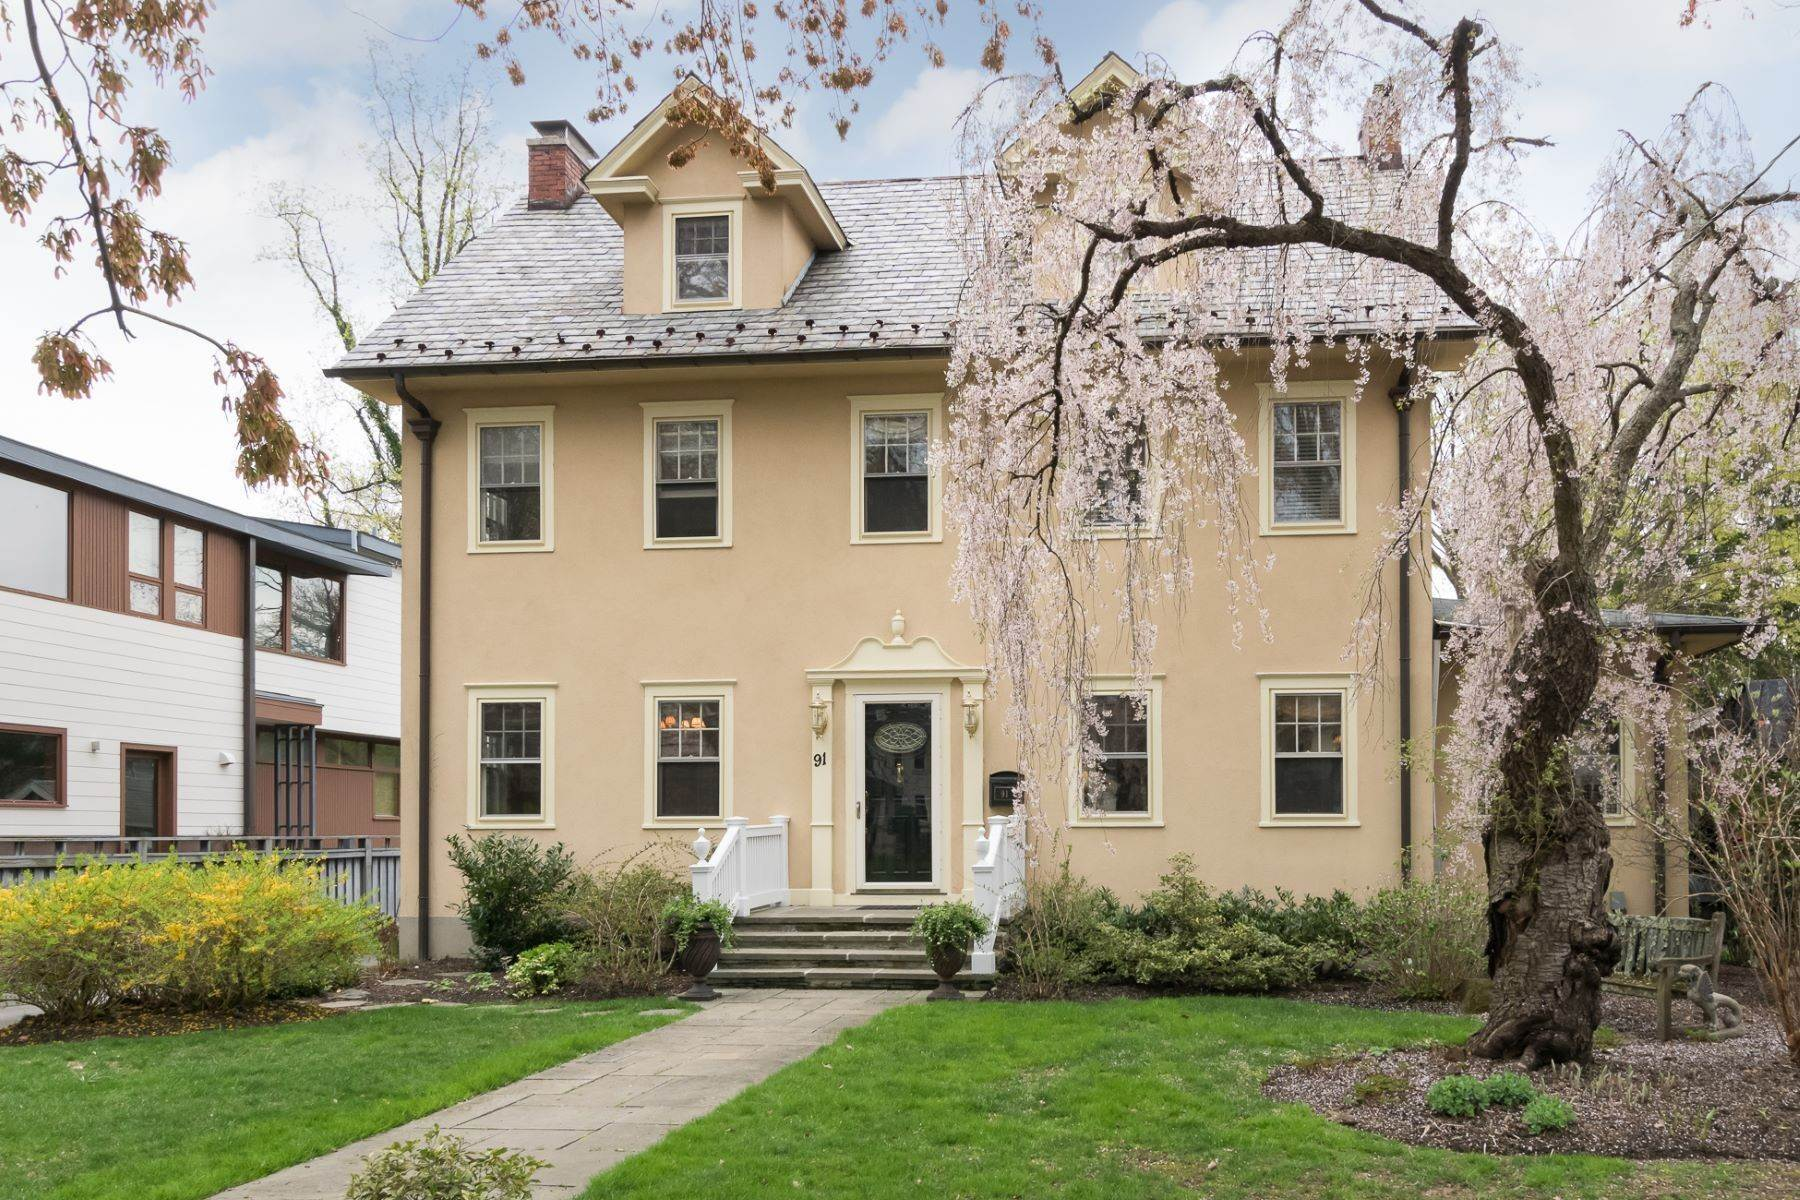 Single Family Homes für Verkauf beim In-Town Beauty Brimming With Delightful Character 91 Moore Street, Princeton, New Jersey 08540 Vereinigte Staaten